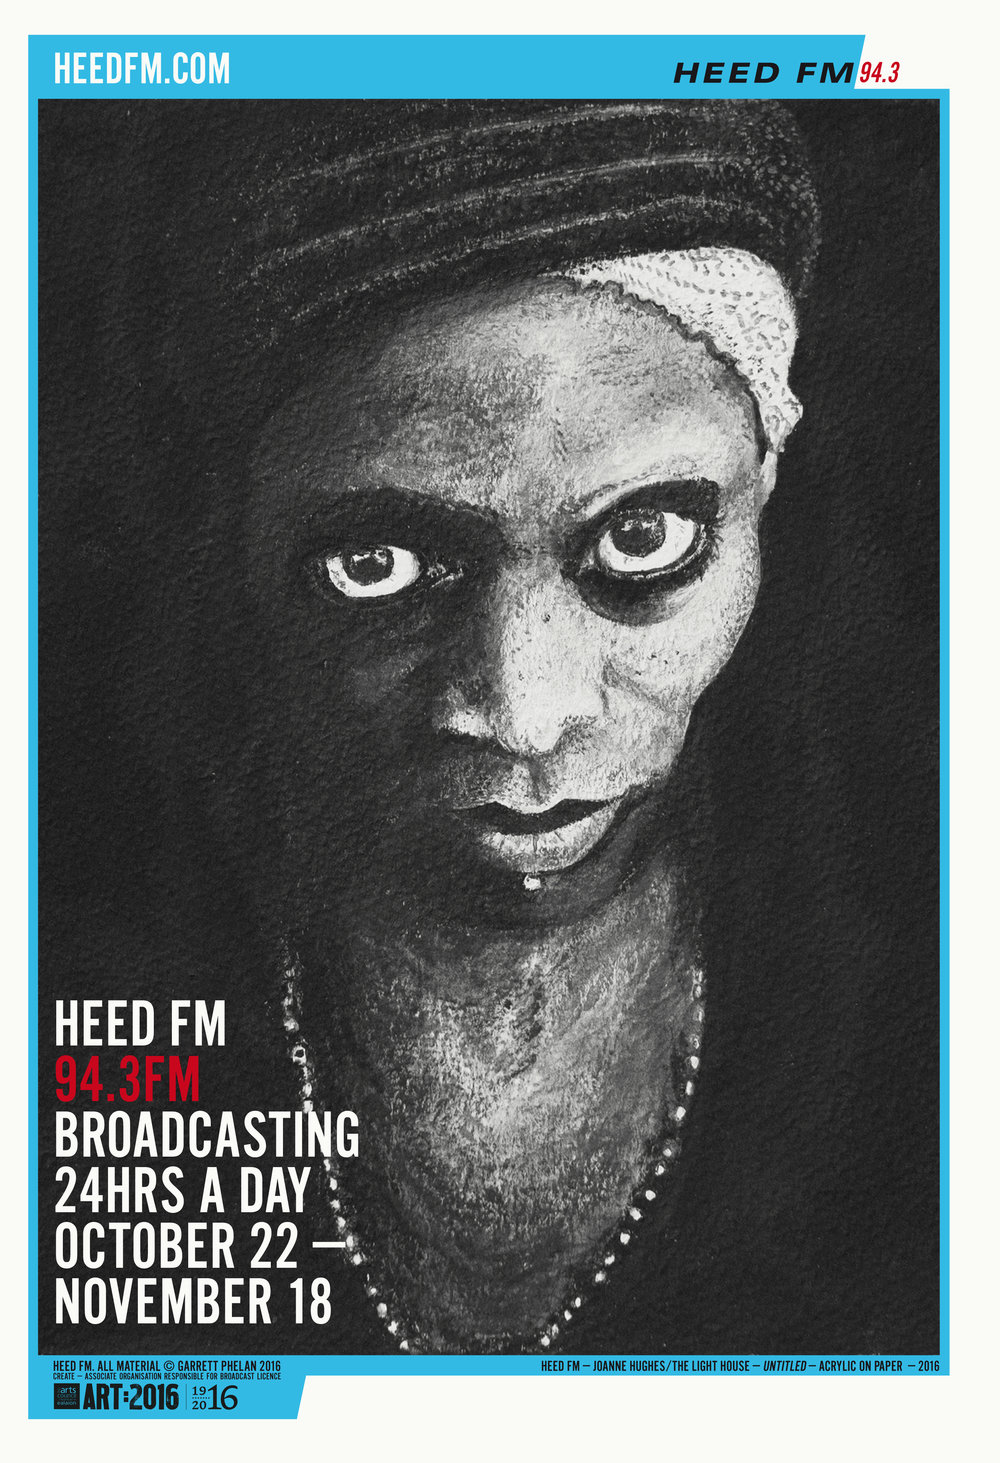 heed fm 4 sheets artwork-21.jpg